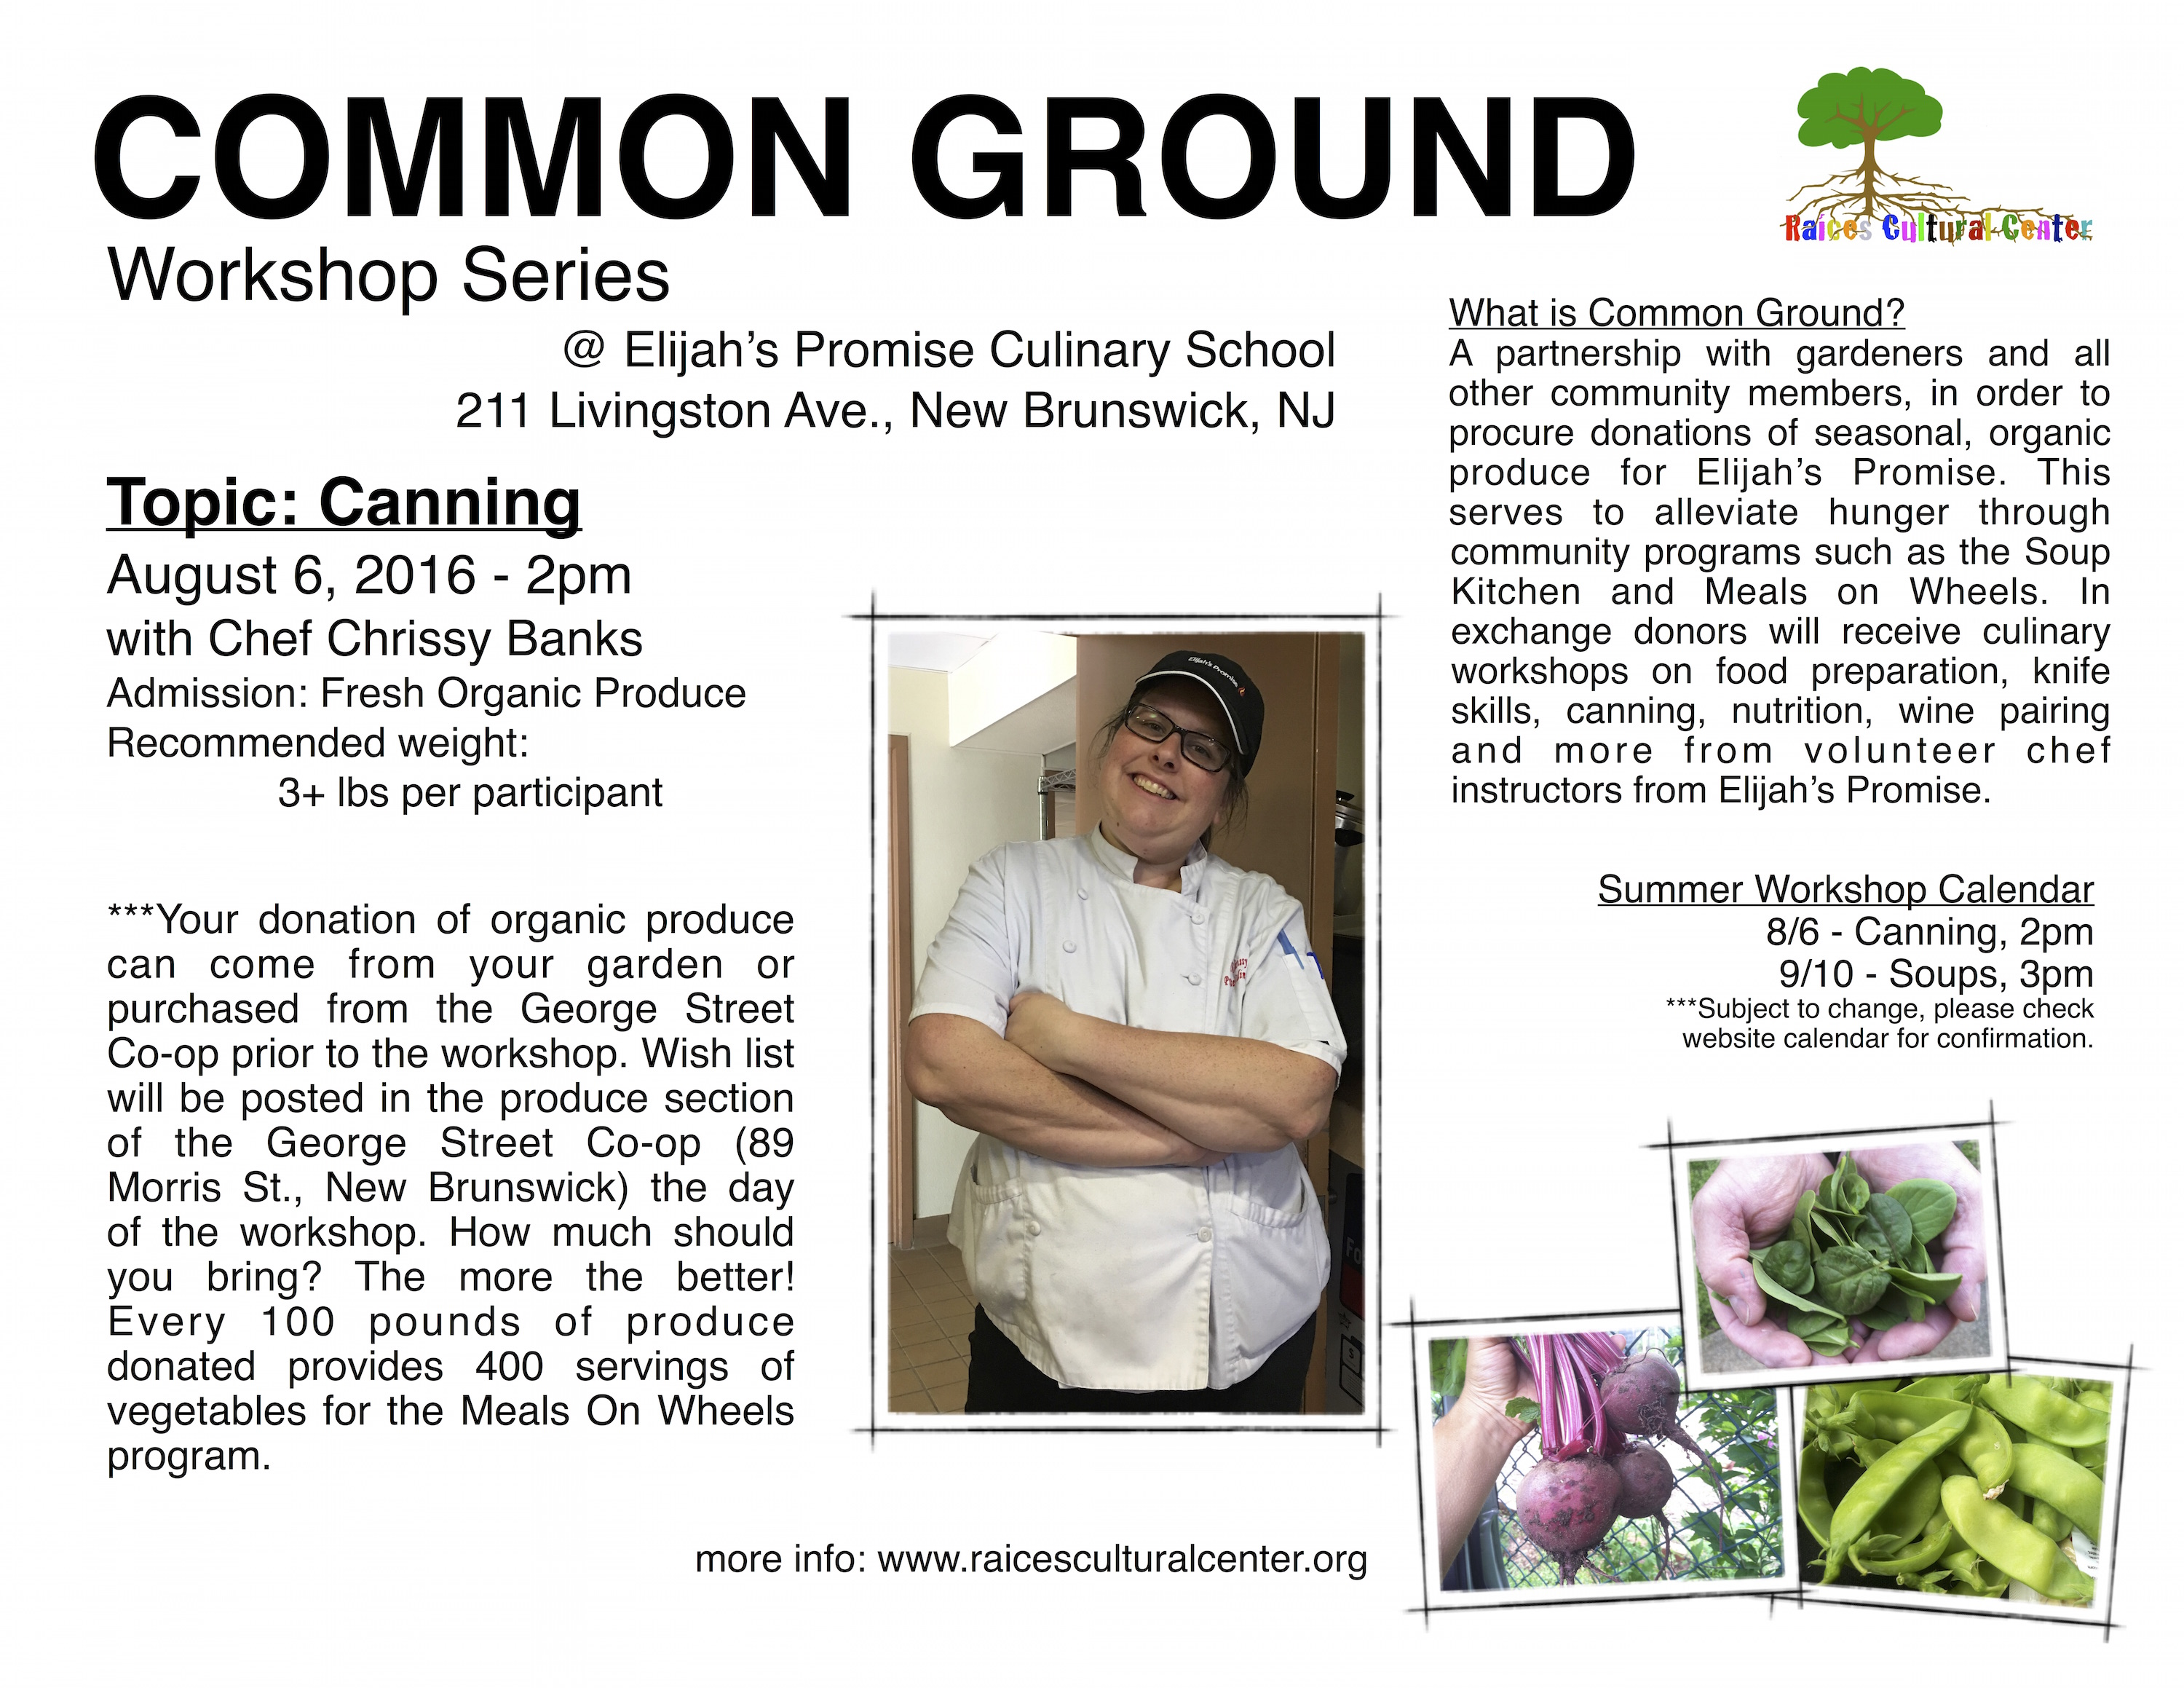 Common Ground Summer Workshop Schedule | The Raíces Cultural Center Blog